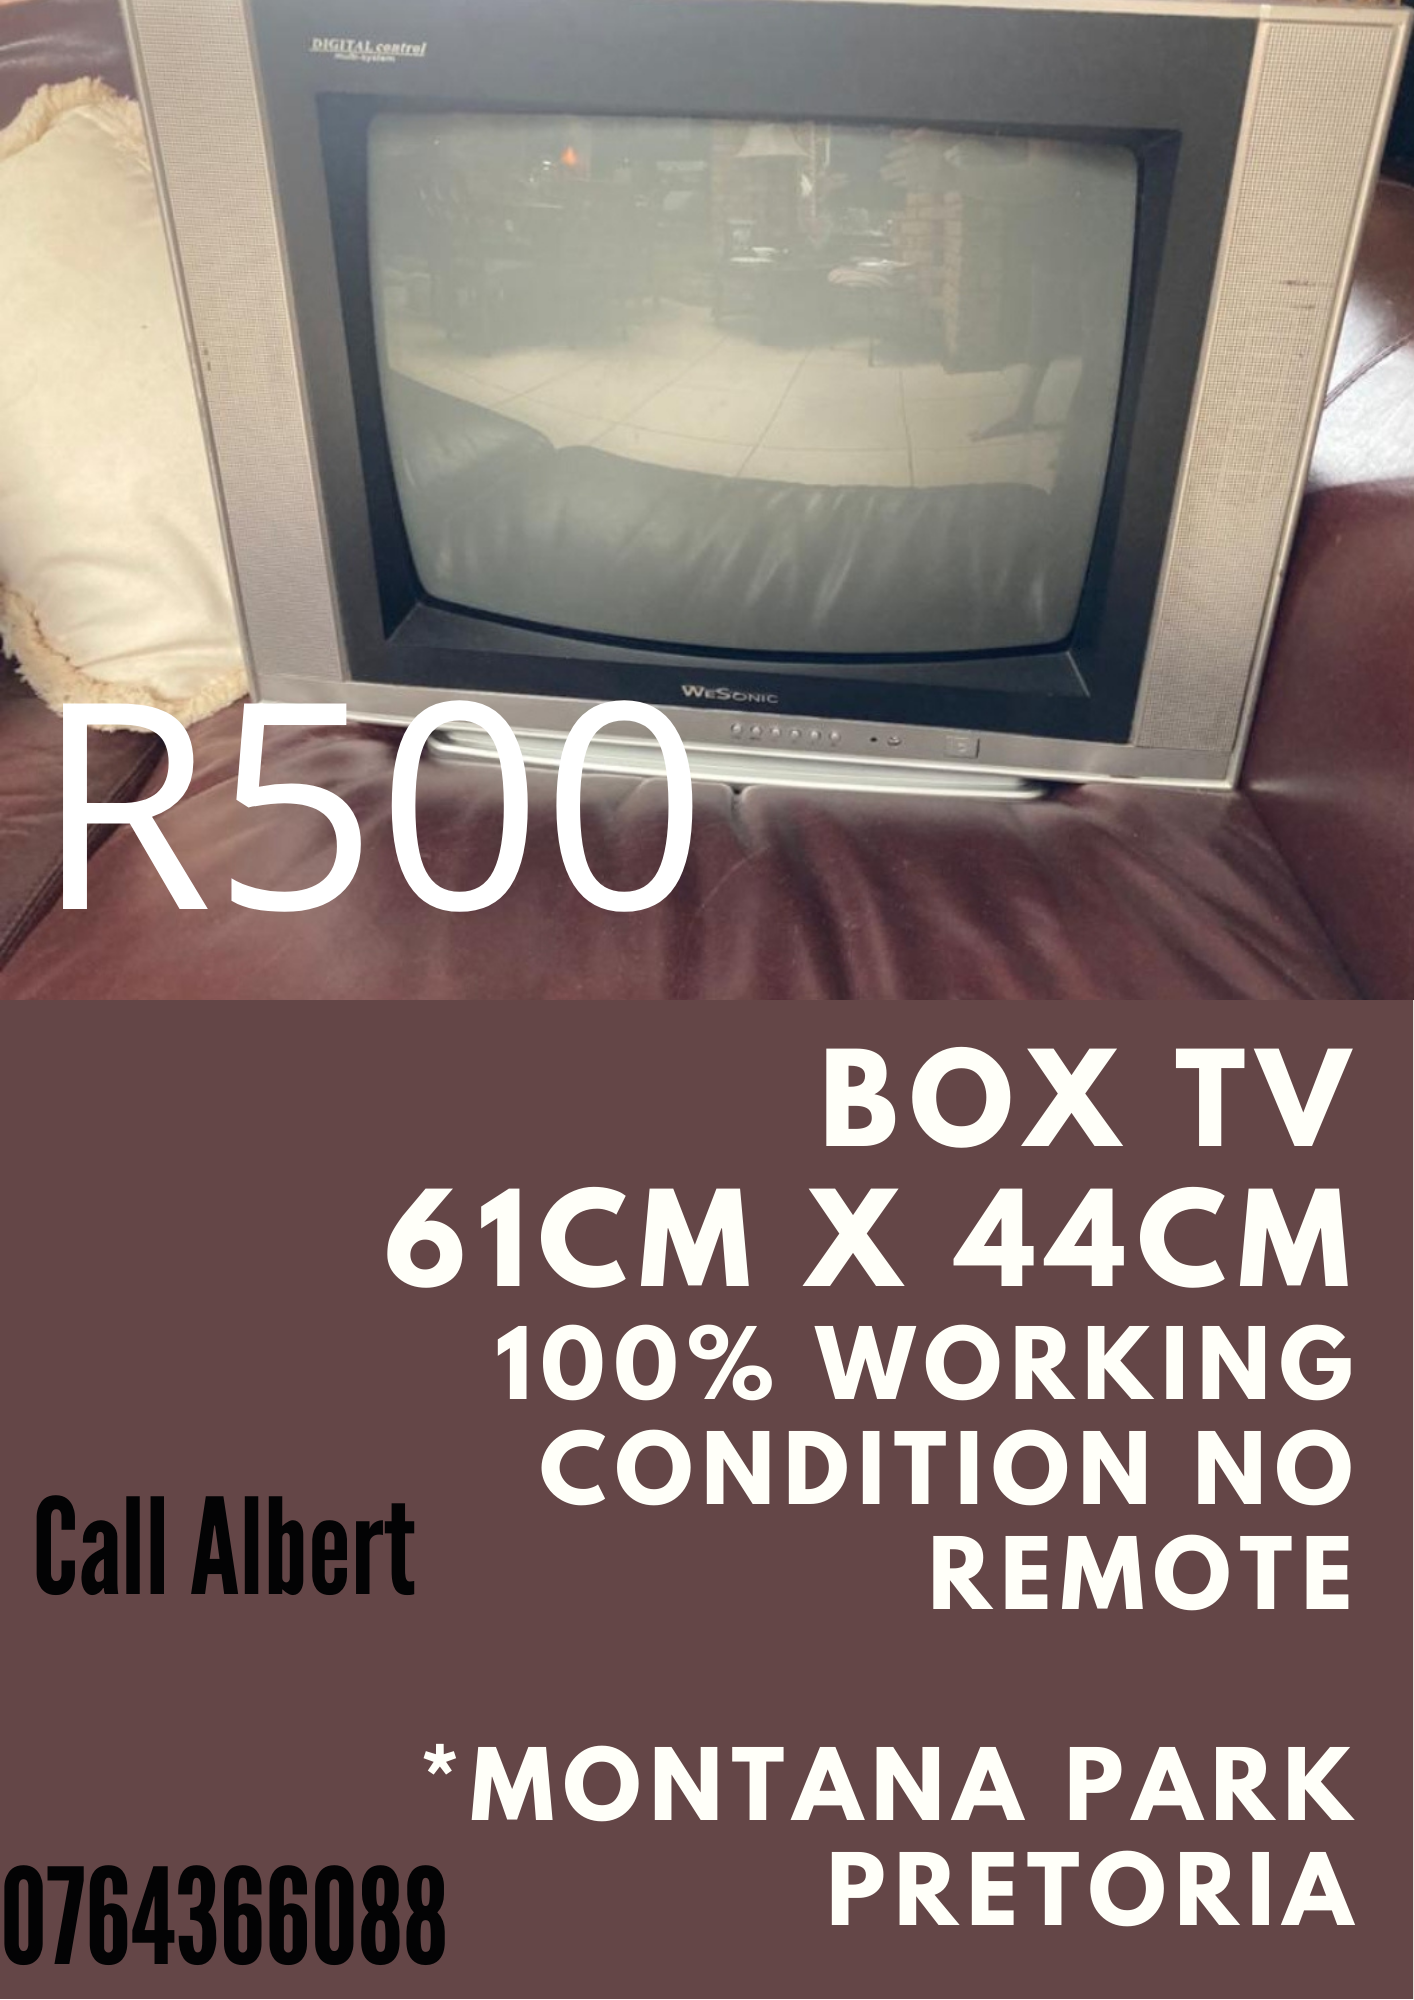 Box Tv R500 without remote